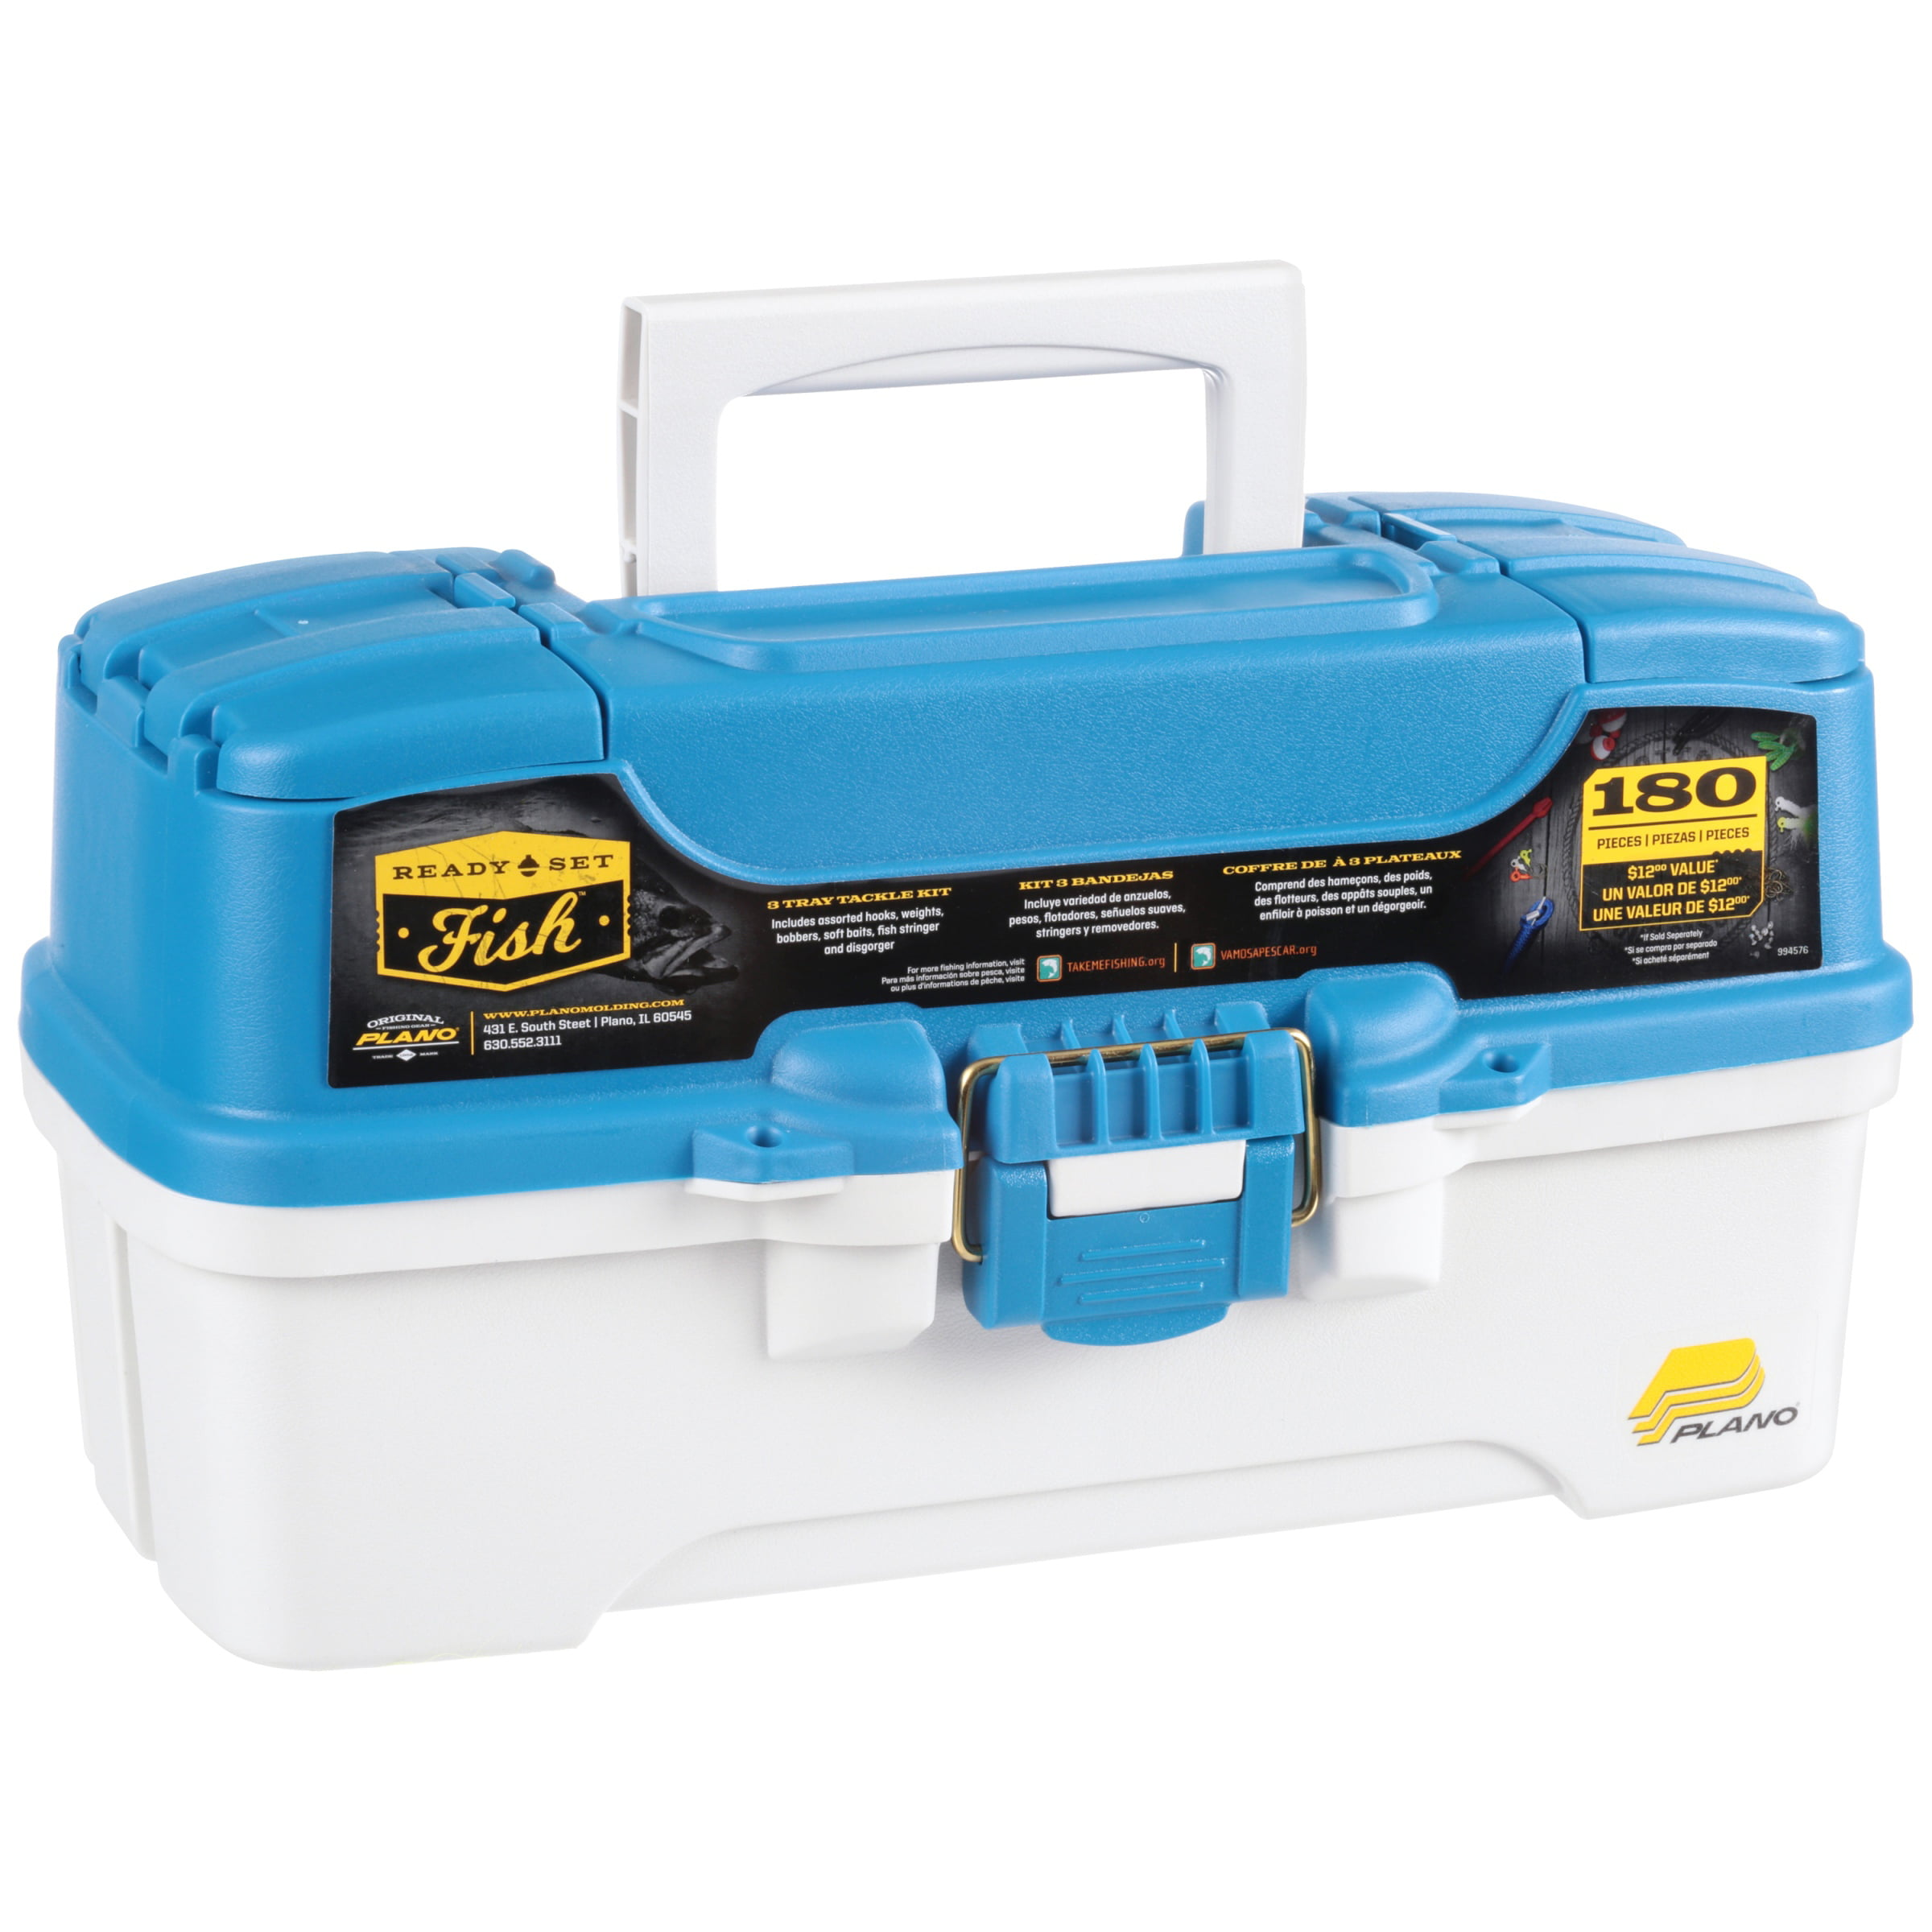 Plano Fishing Ready Set Fish, 180 pc Tackle Box by Plano Synergy Inc.